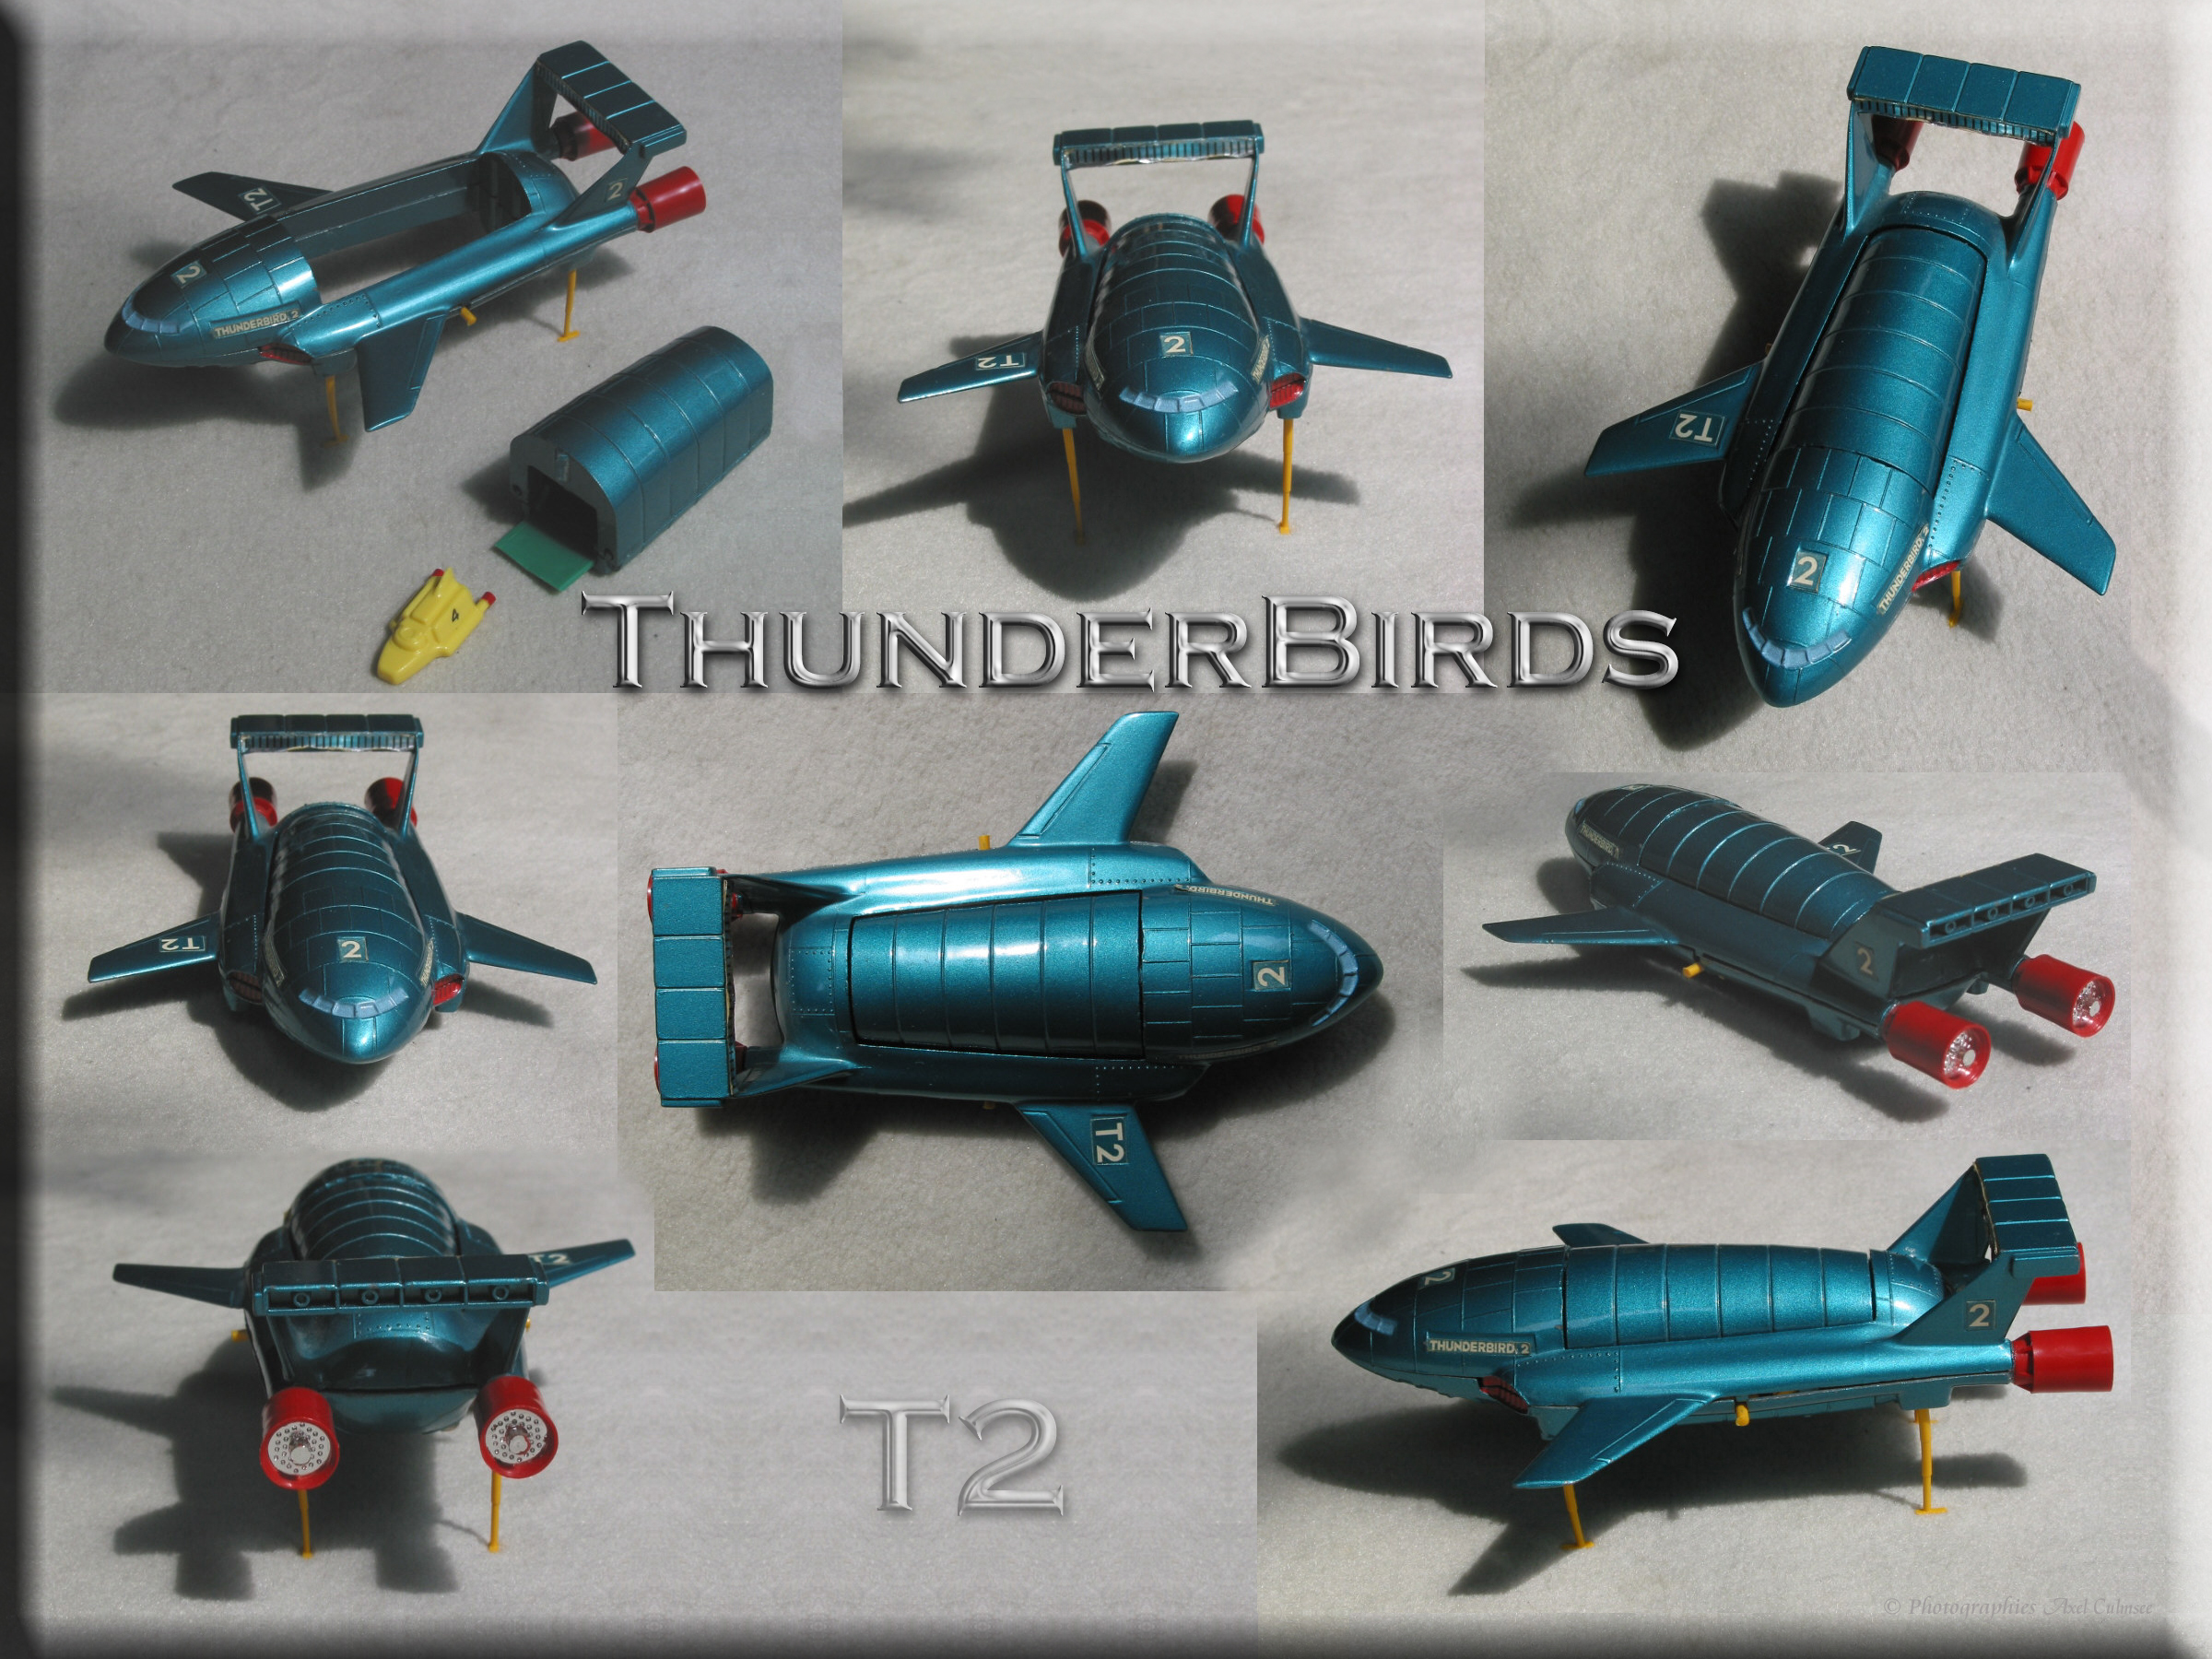 Thunderbird T2 from series Thunderbirds UK 1964-1966